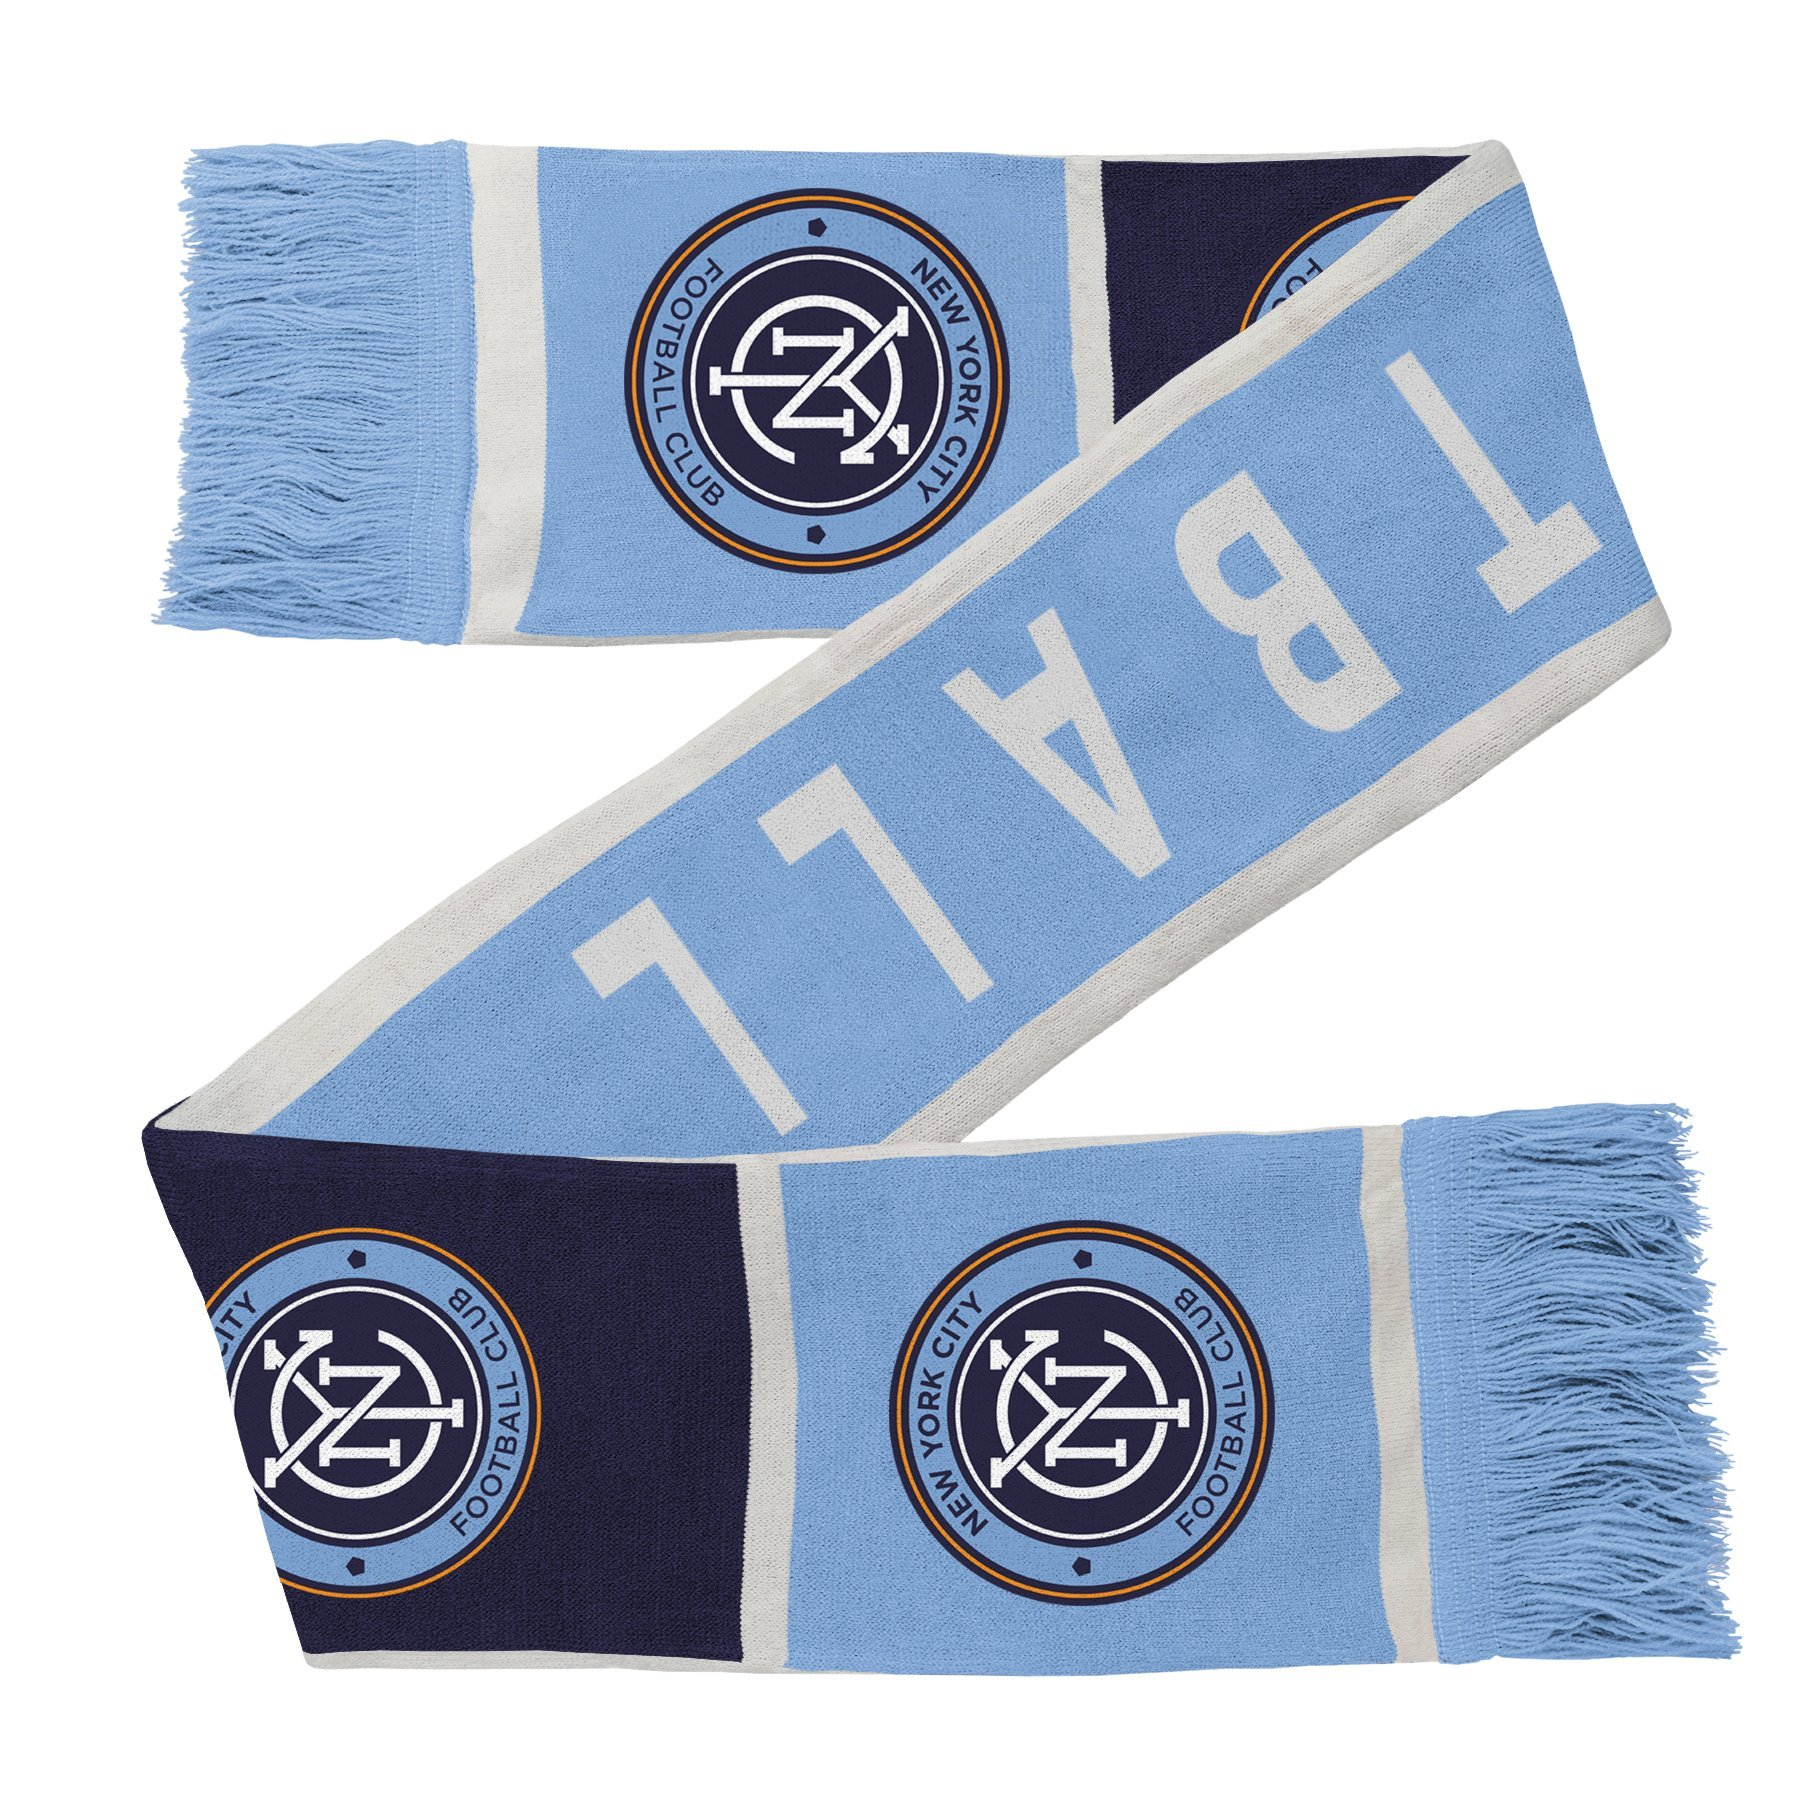 Outerstuff MLS NYCFC R S8FDW Youth Boys Fringe Scarf, One Size (8), Bahia Blue